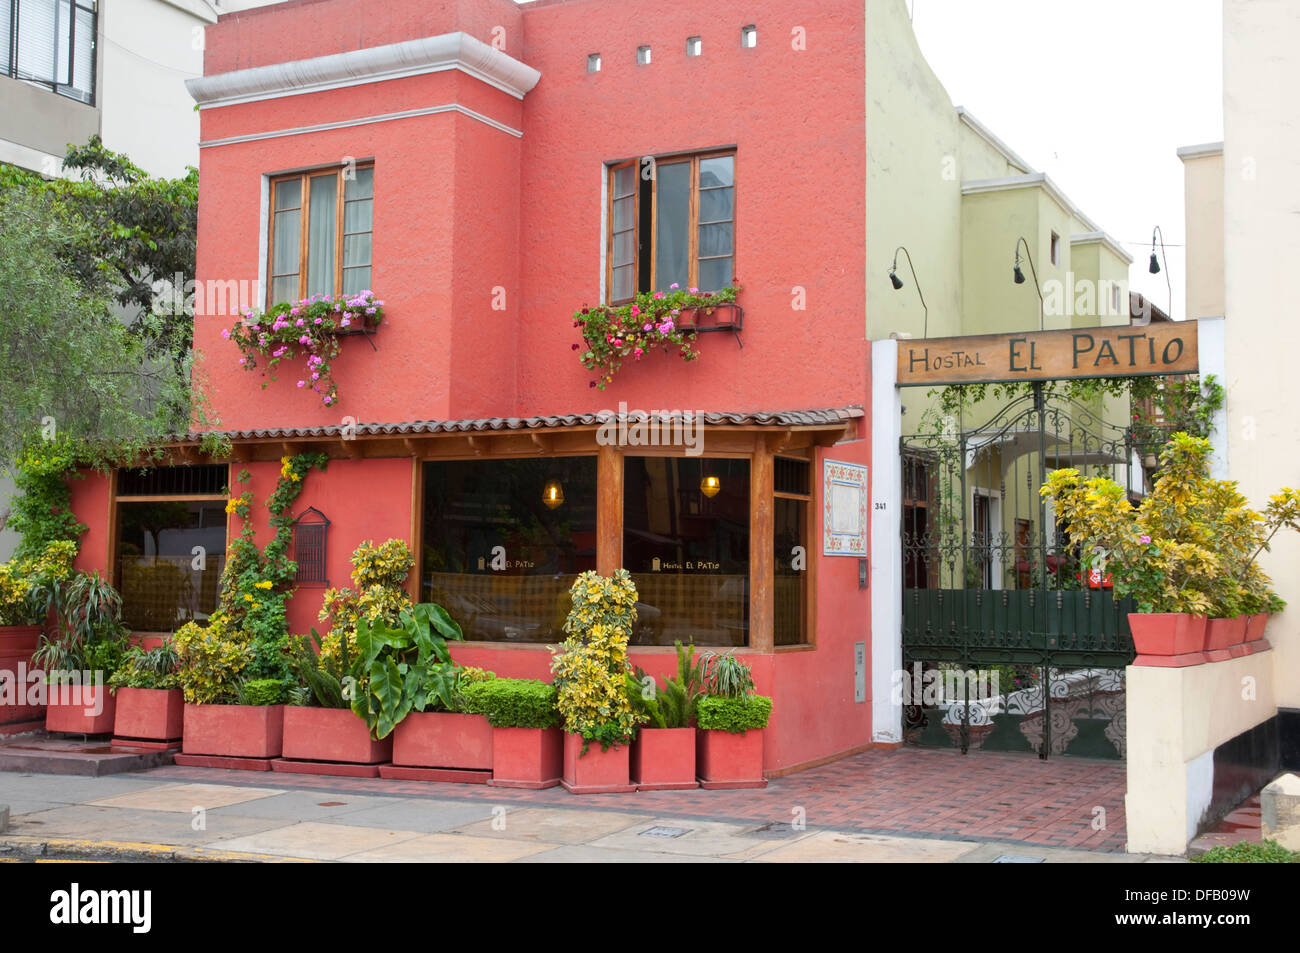 Stock Photo   The Exterior Of The El Patio Hostal In Miraflores, Lima,  Peru, South America